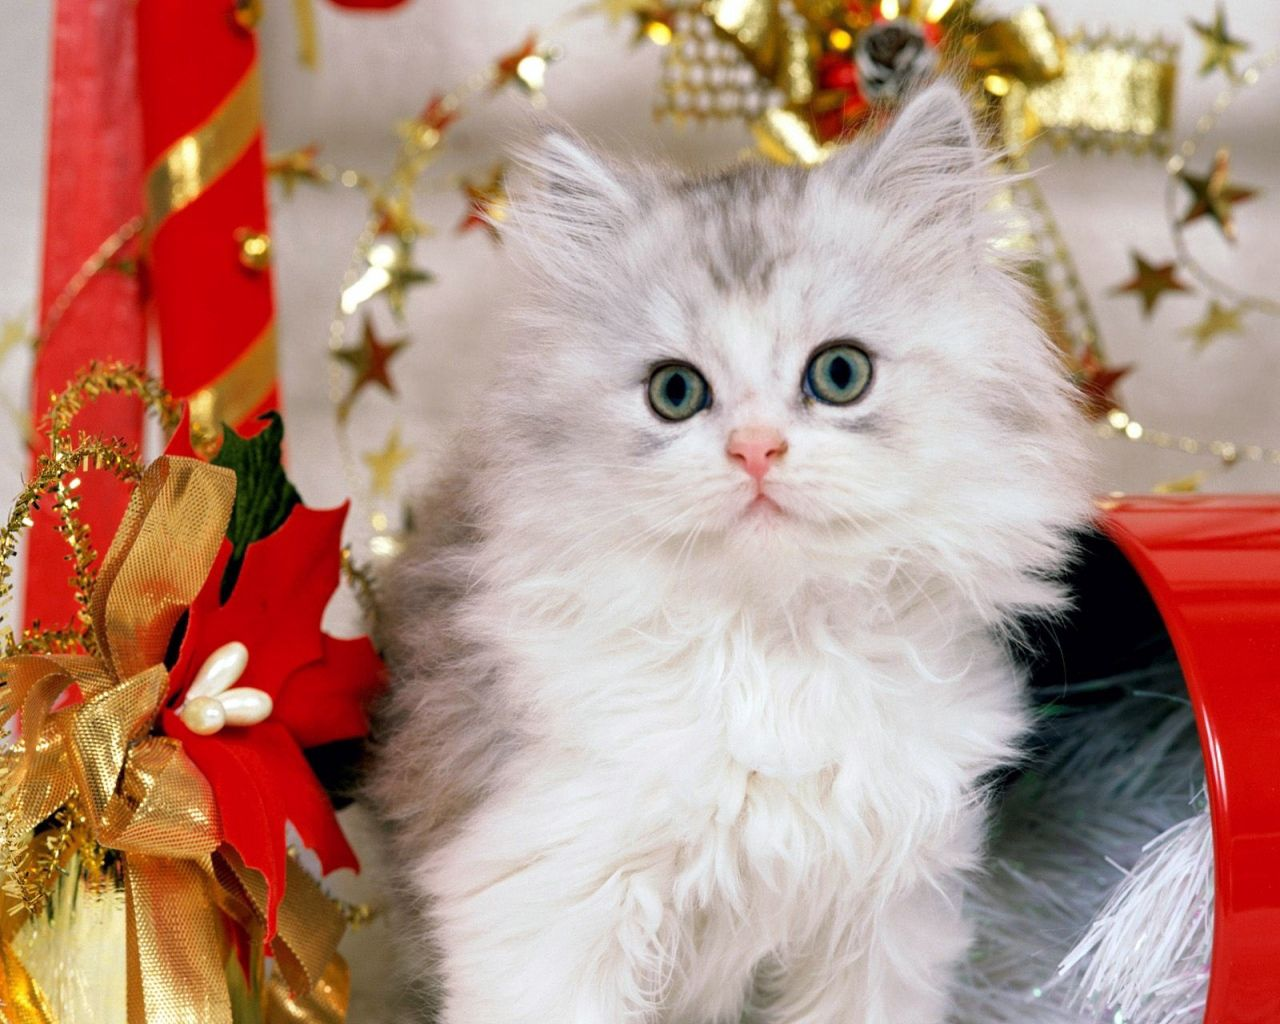 122278 Screensavers and Wallpapers Toys for phone. Download Animals, New Year, Toys, Cat, Fluffy, Bows, Presents, Gifts pictures for free